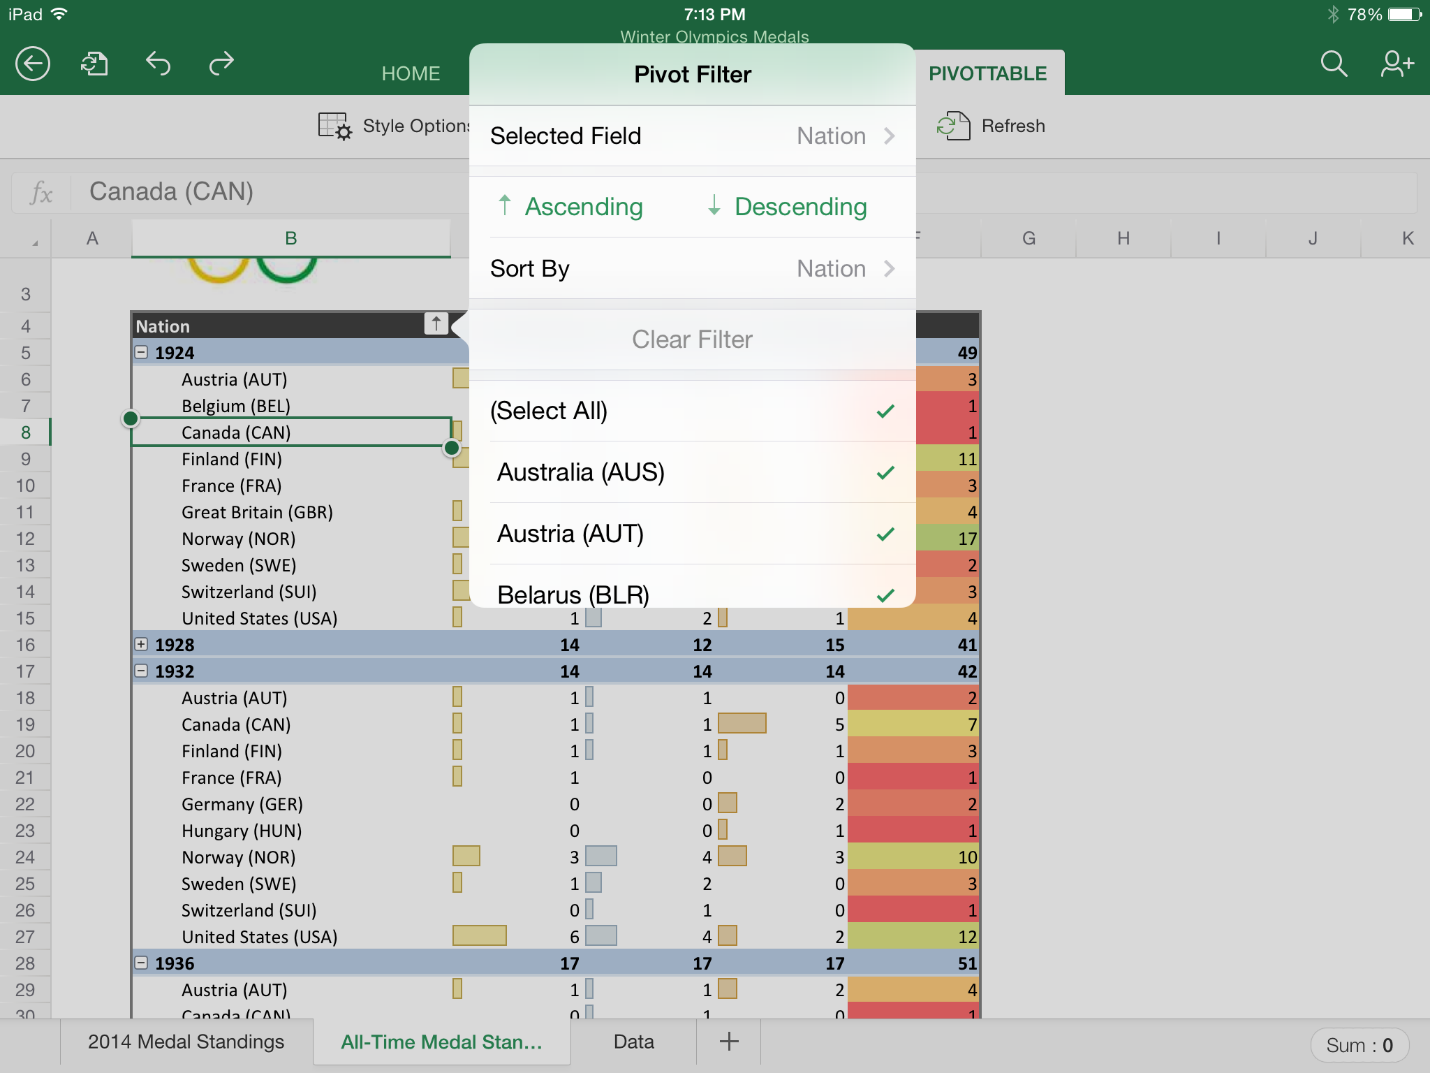 Excel 1.1 for iiPad (PivotTable)